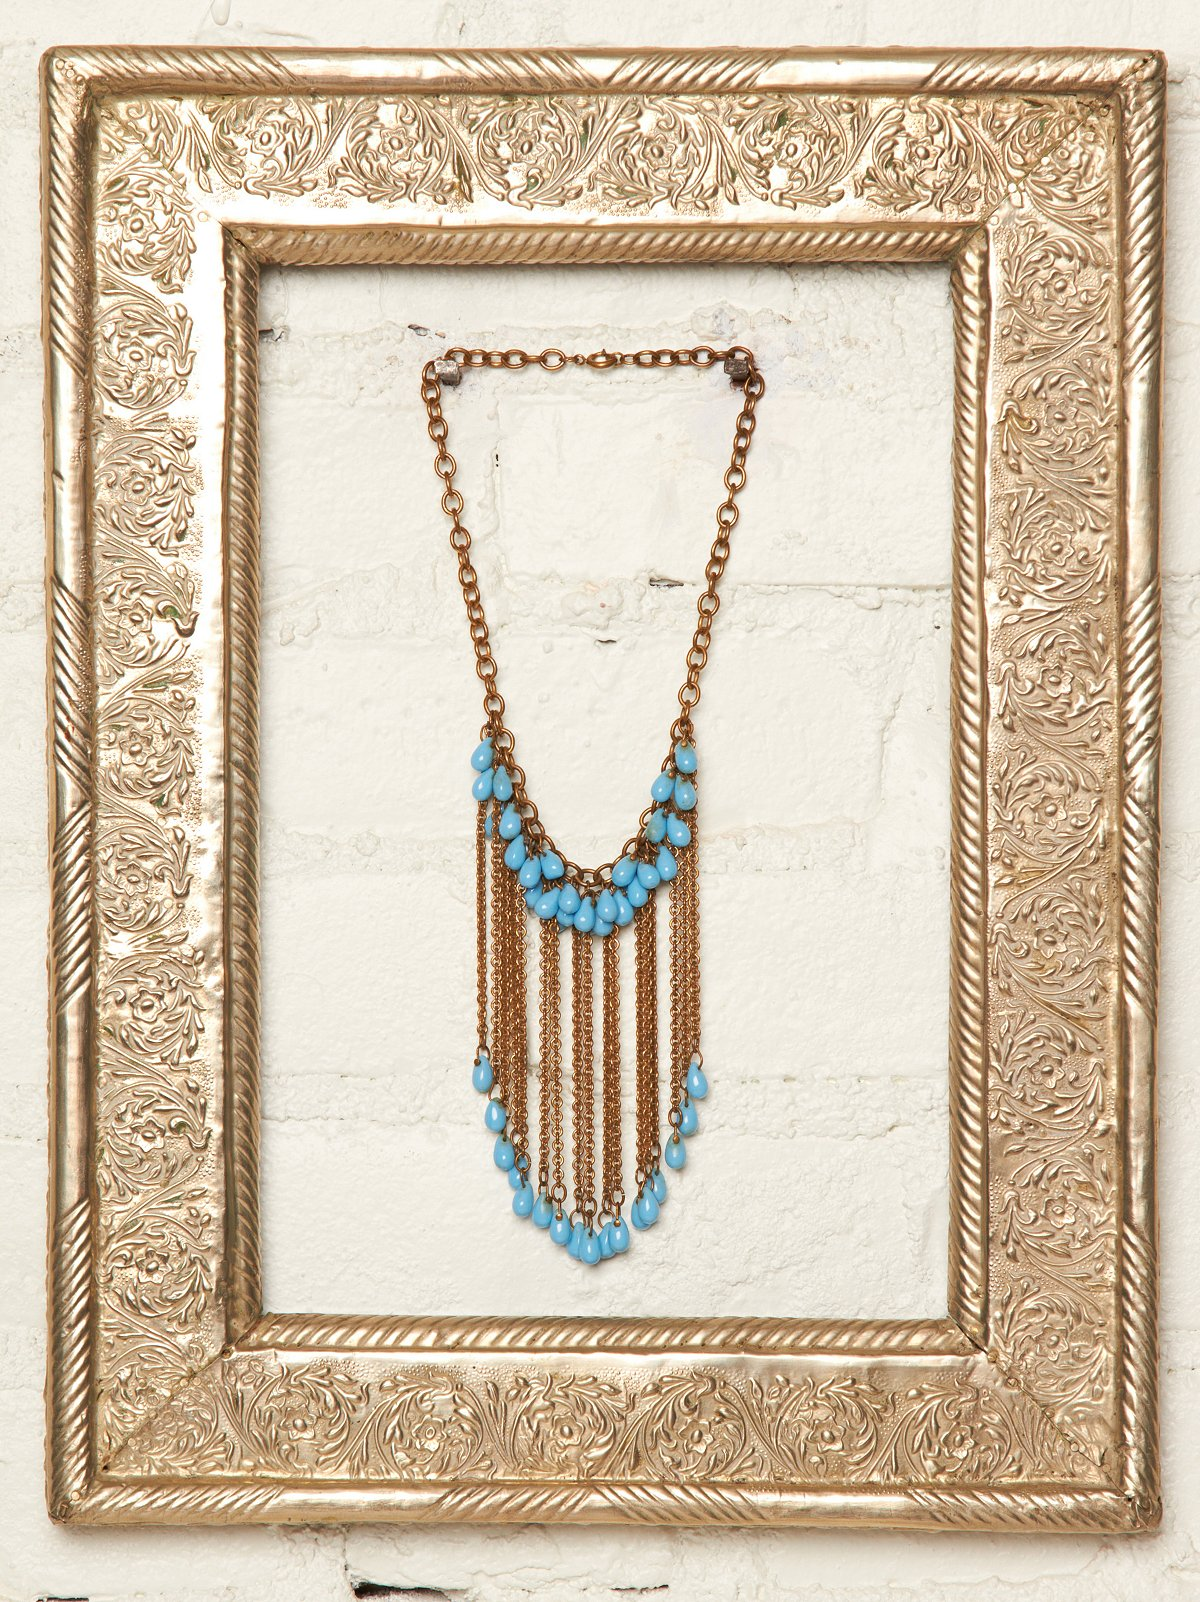 Vintage Chain and Blue Bead Necklace